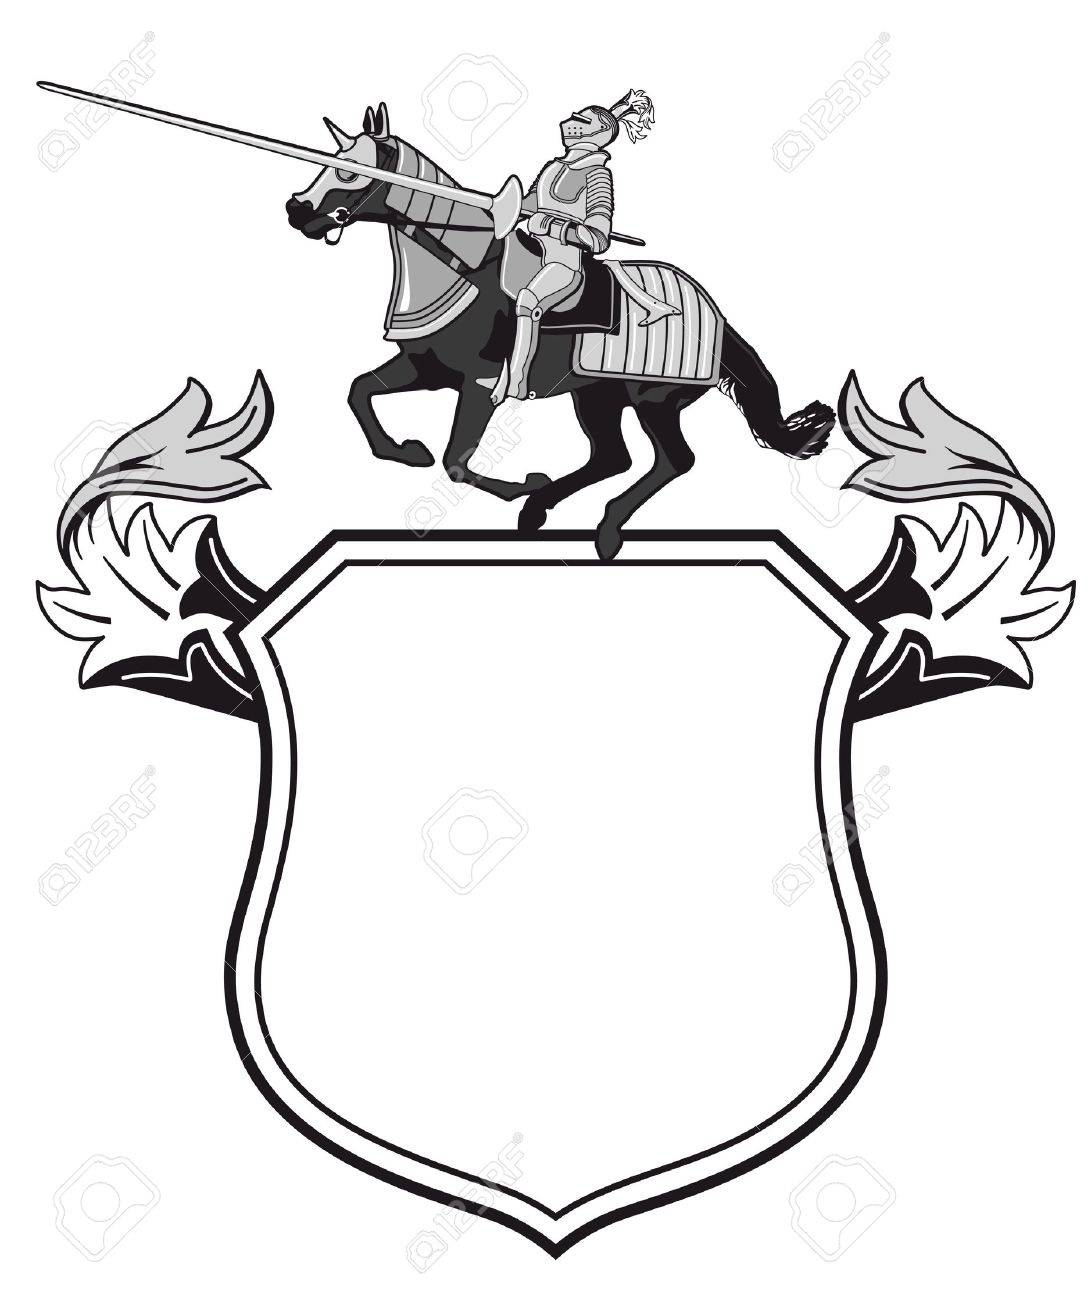 Knights tournament crest Stock Vector - 18555715